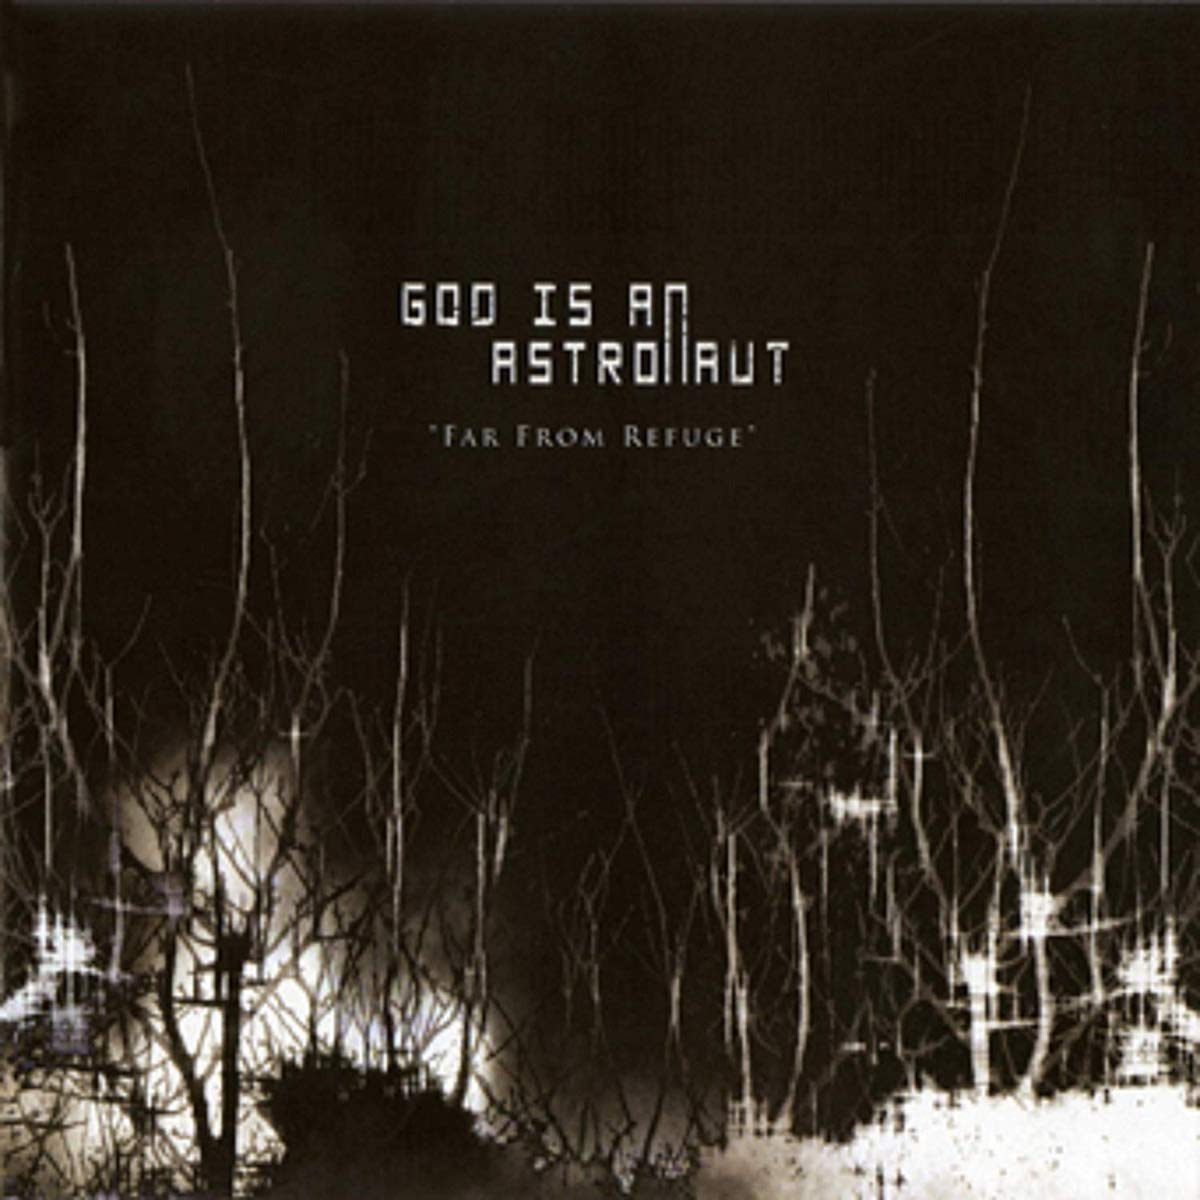 Vinilo : God Is an Astronaut - Far From Refuge (United Kingdom - Import)